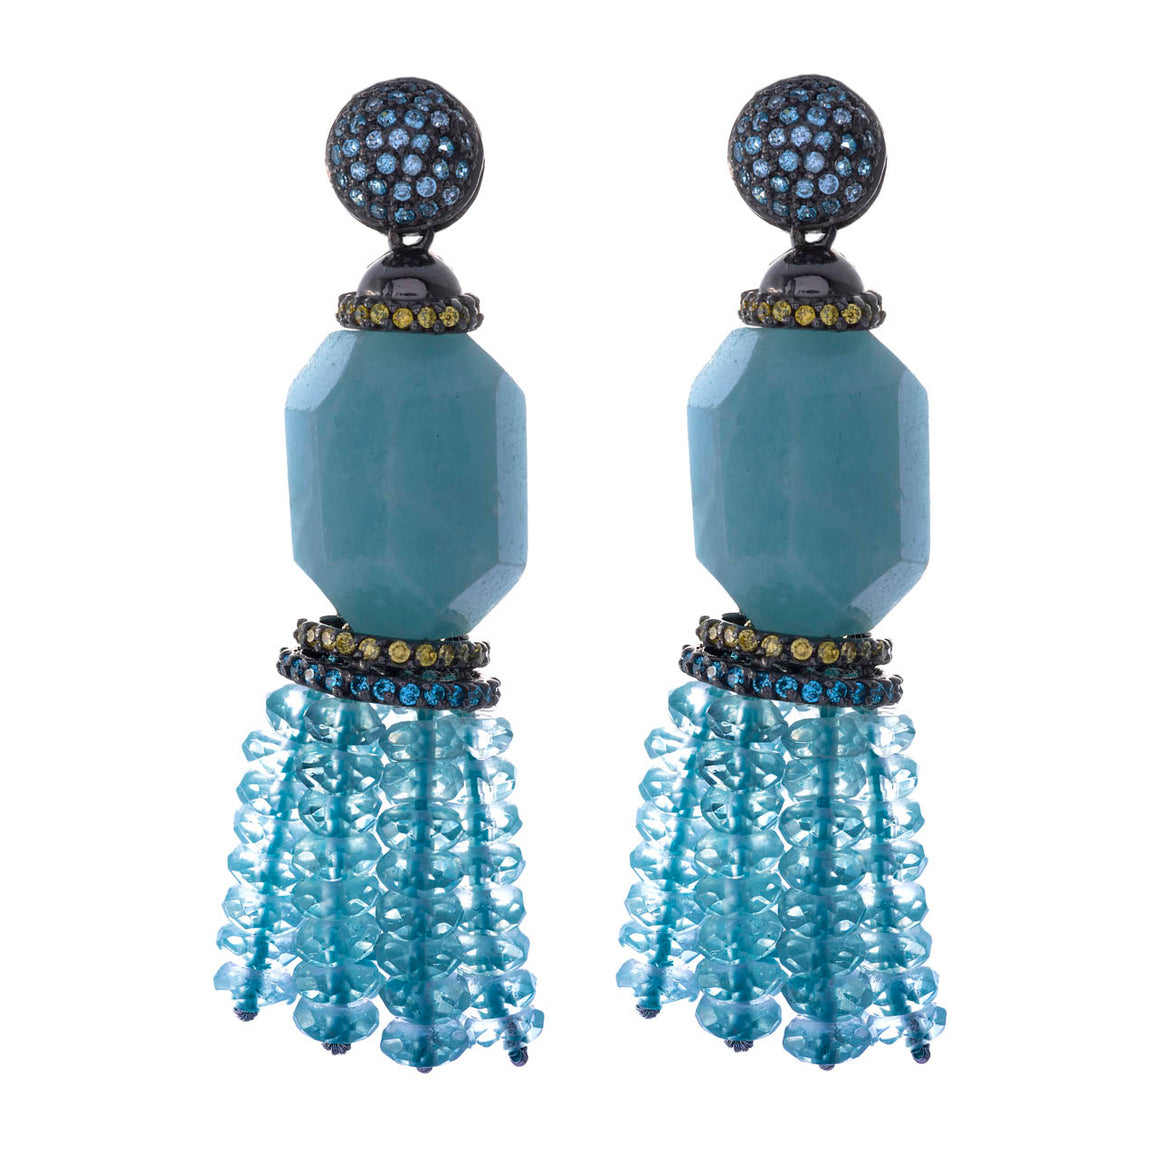 Amishi - Doriane Earrings